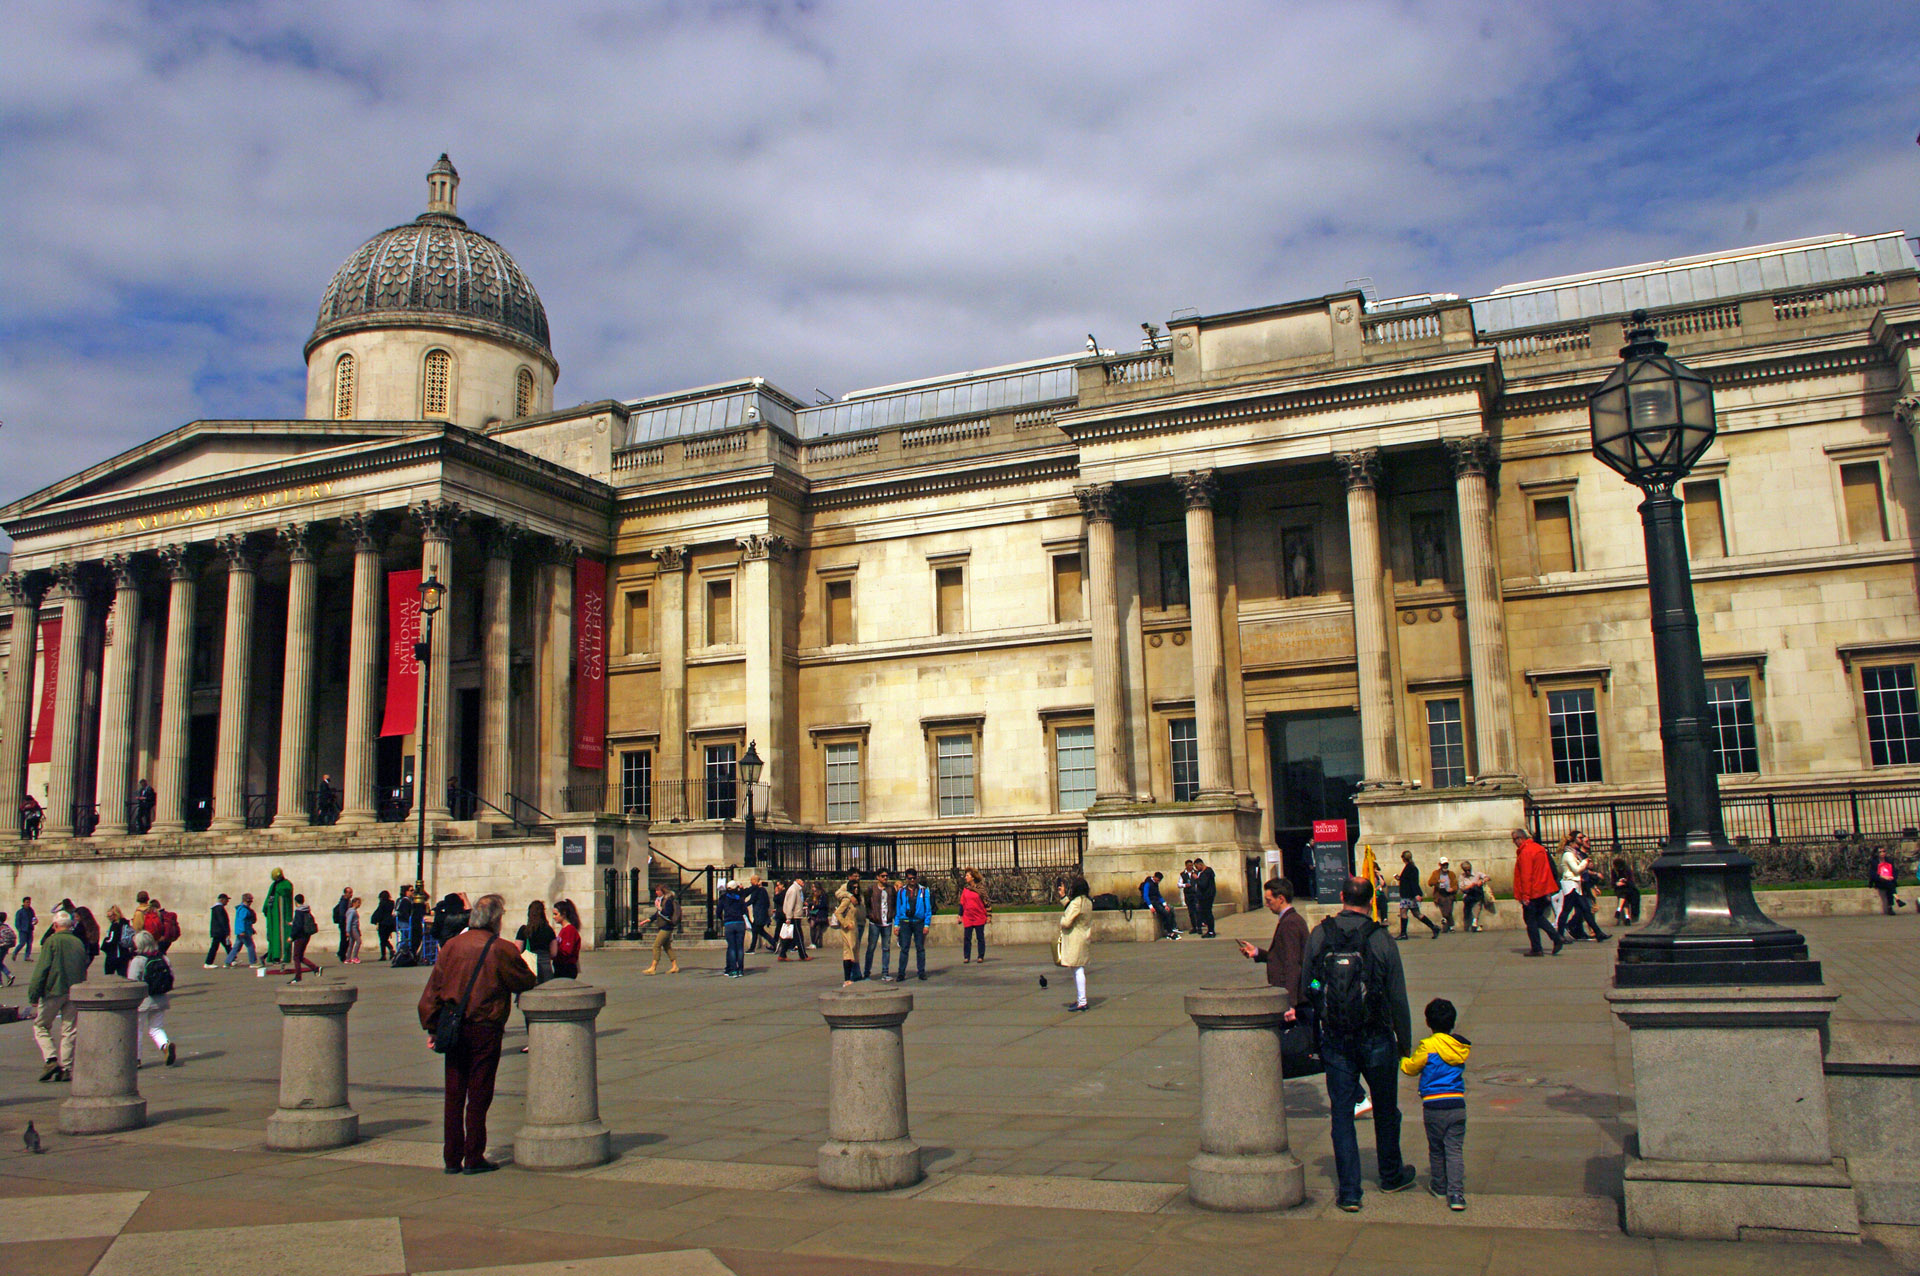 london National Gallery Trafalgar Square free entry Charing Cross tube station